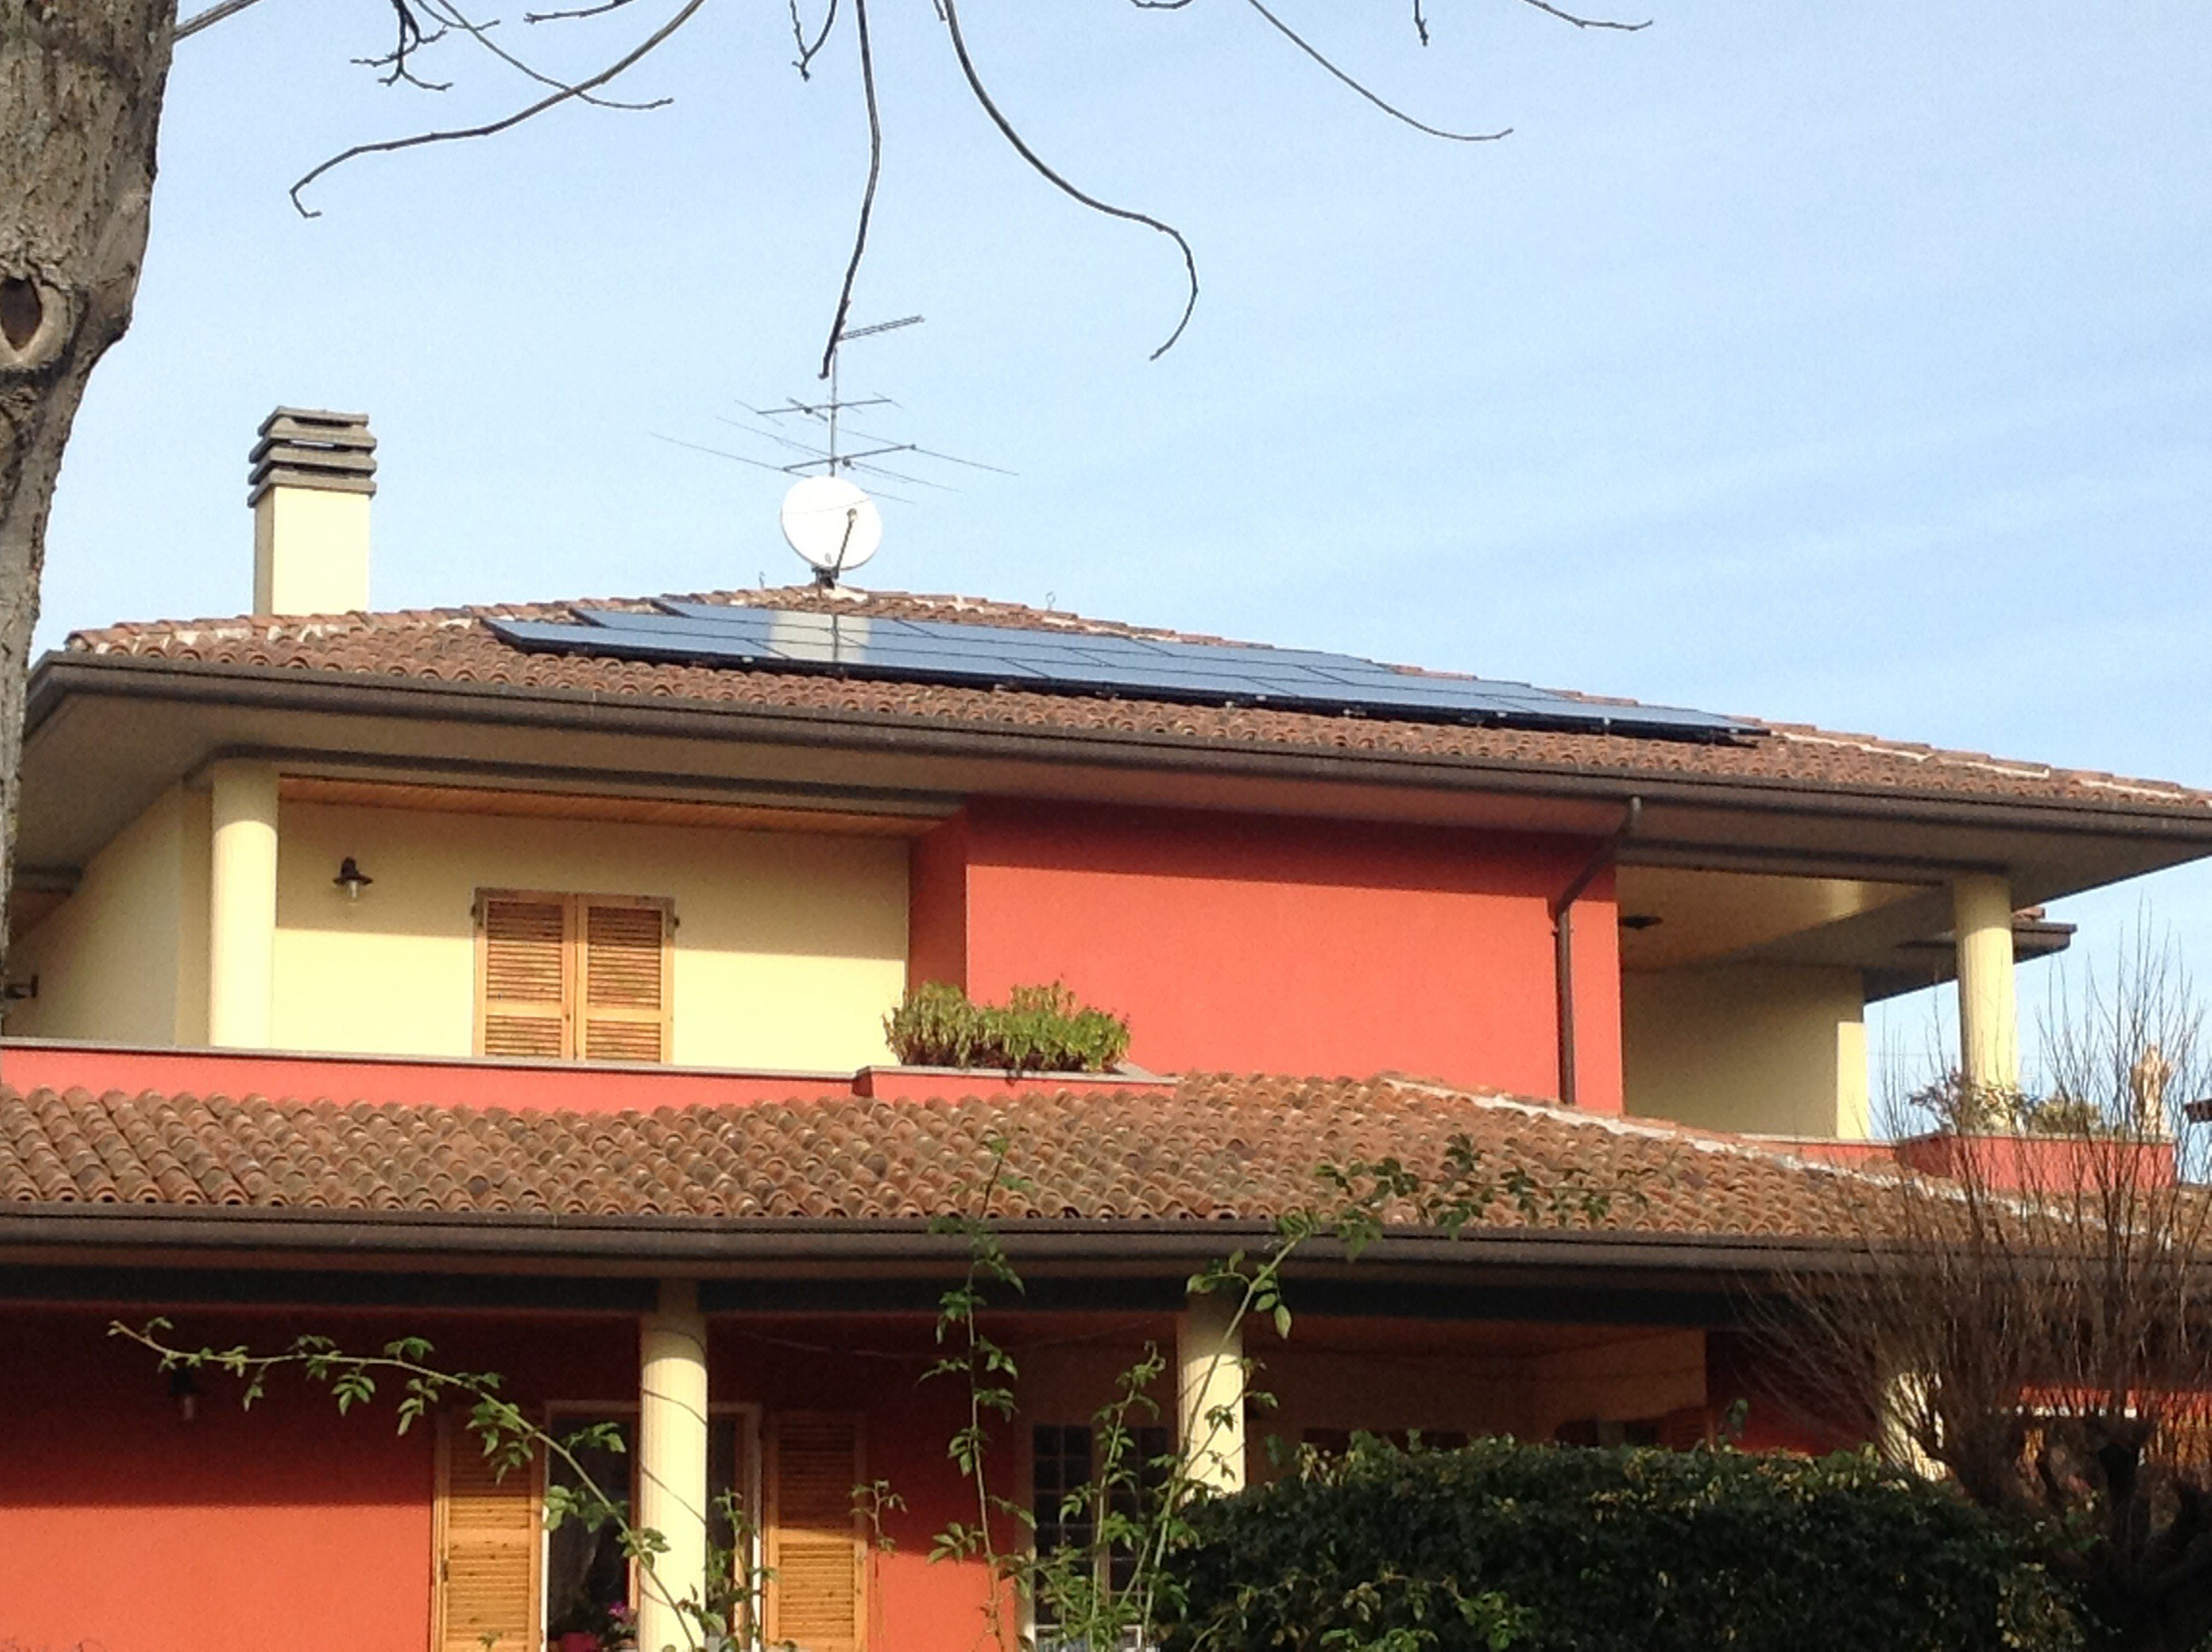 CSolutions S.r.l - Sant'Angelo in vado (PU)